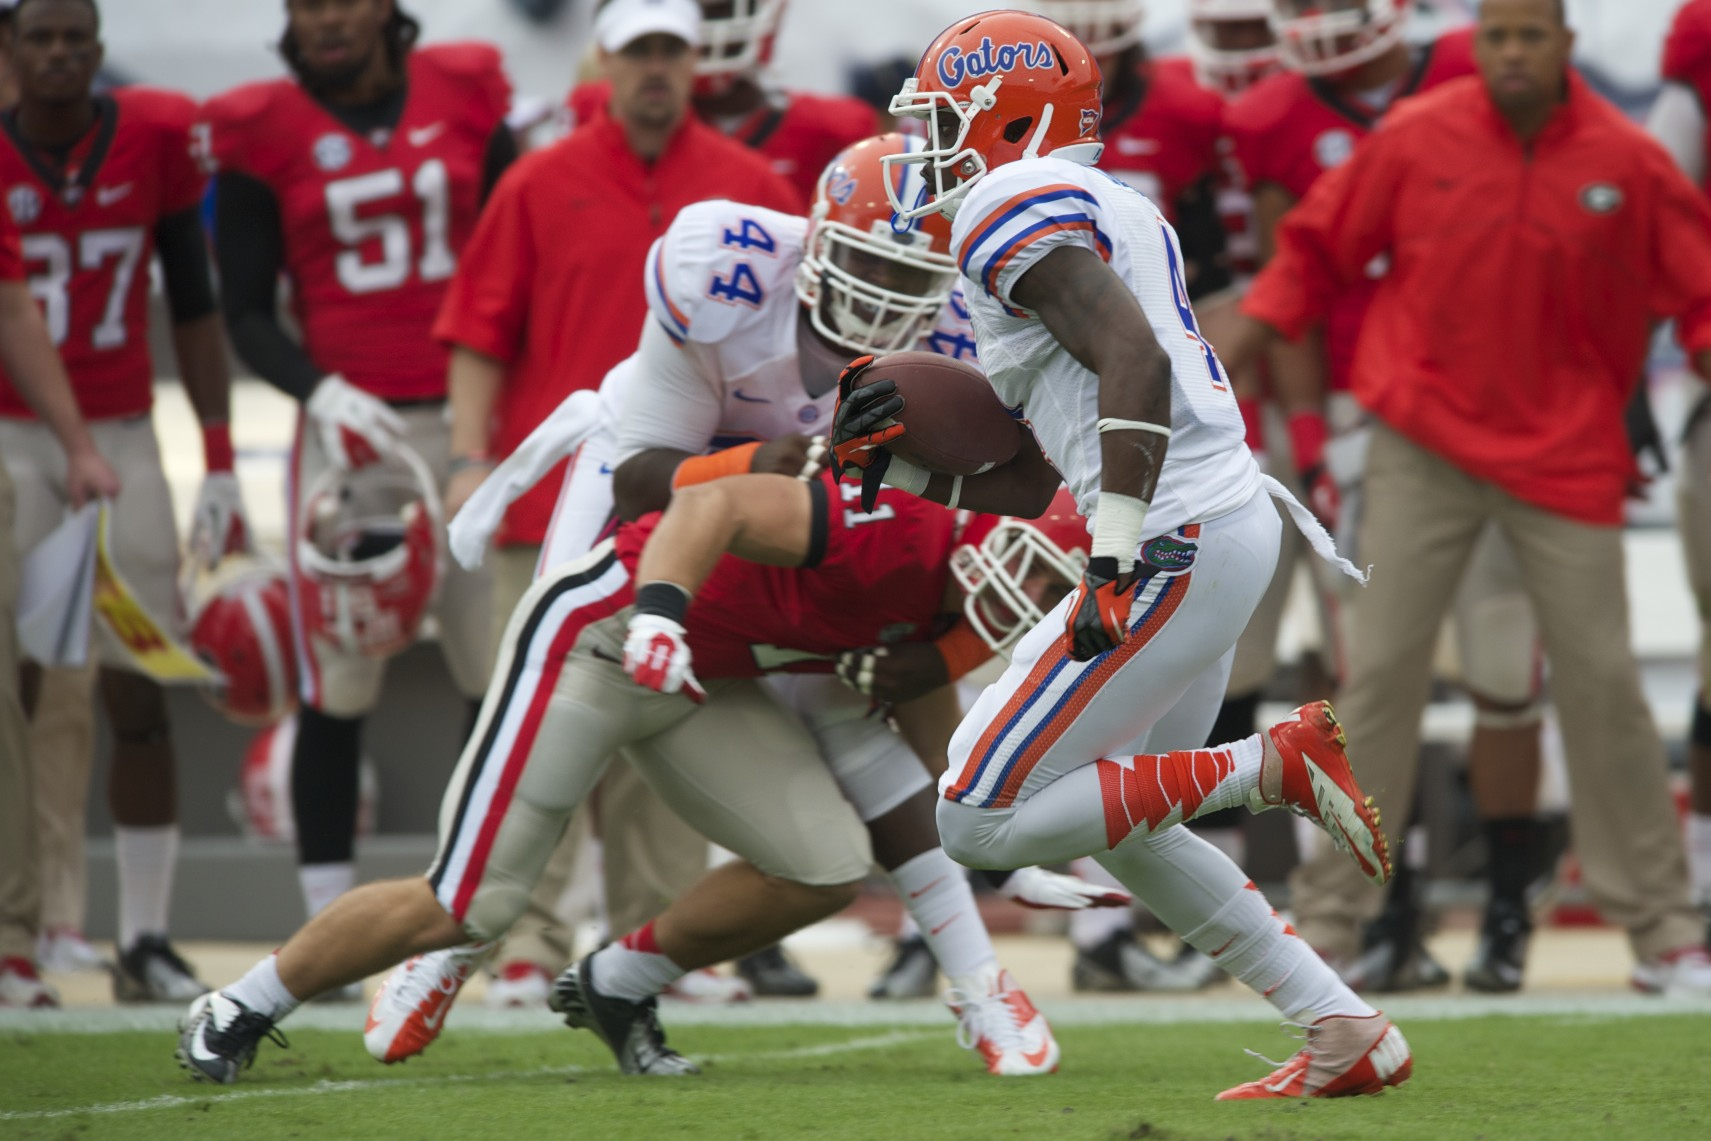 Florida's Andre Debose avoids the tackle with help of teammate, Leon Orr.